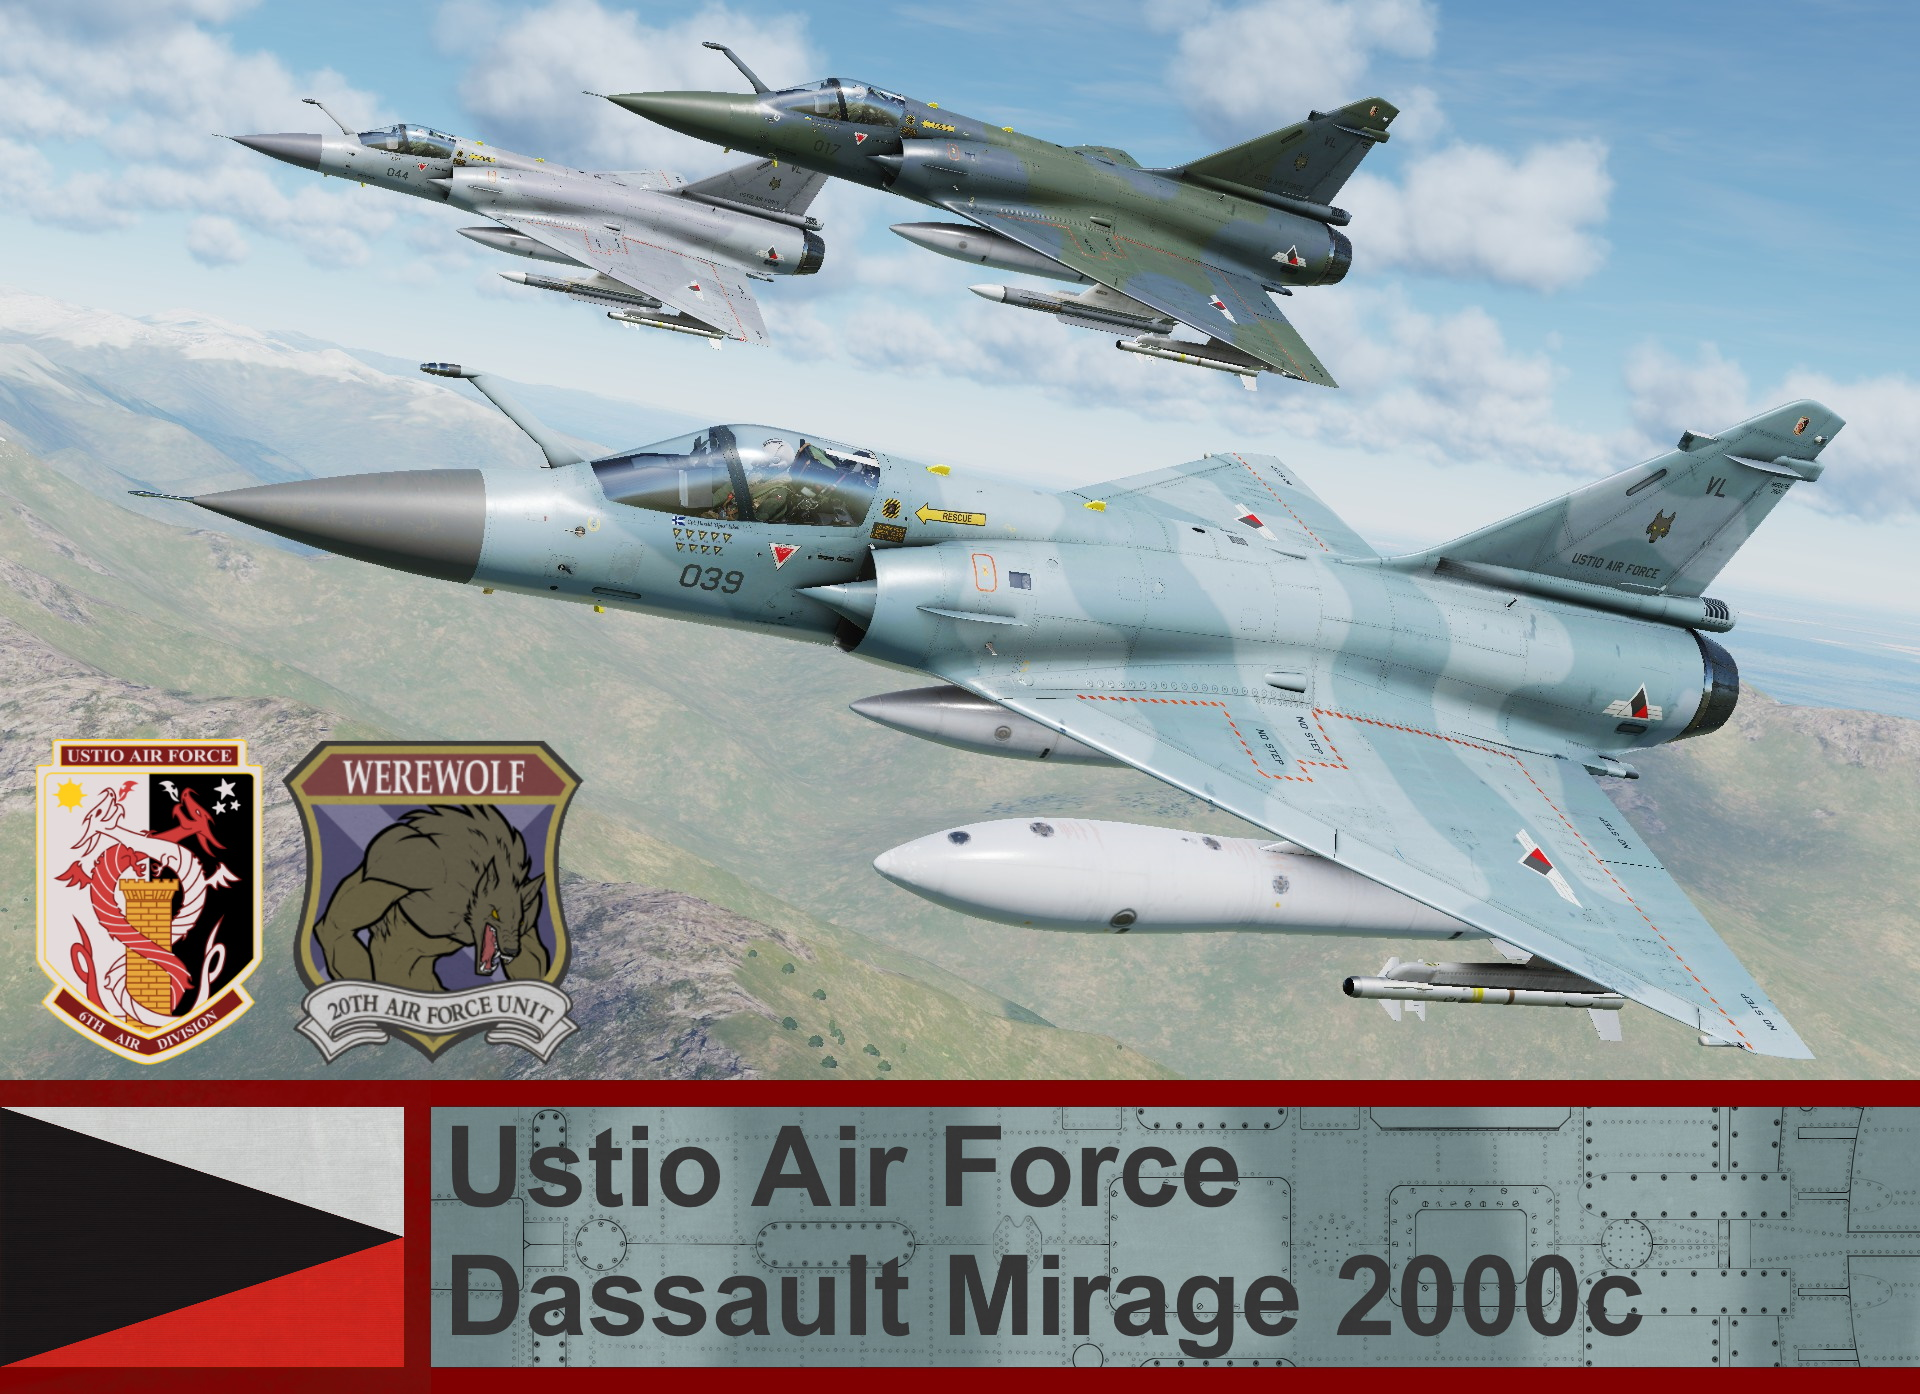 Ustio Air Force Mirage 2000C - Ace Combat Zero (20th AFU)